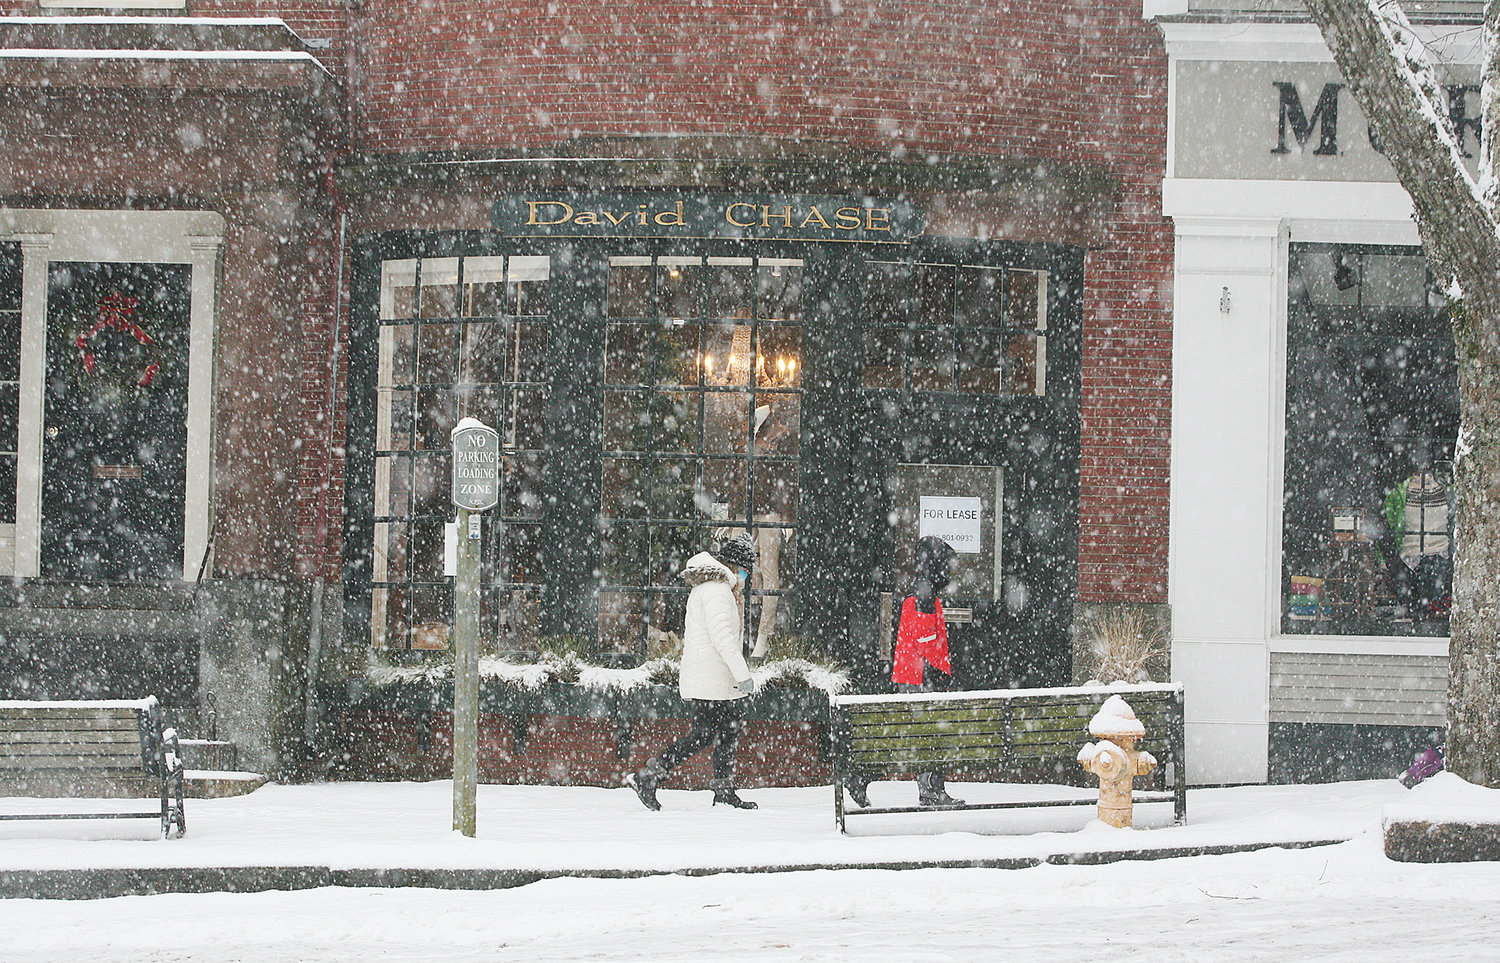 People make their past shops along Main Street during Thursday's snow.